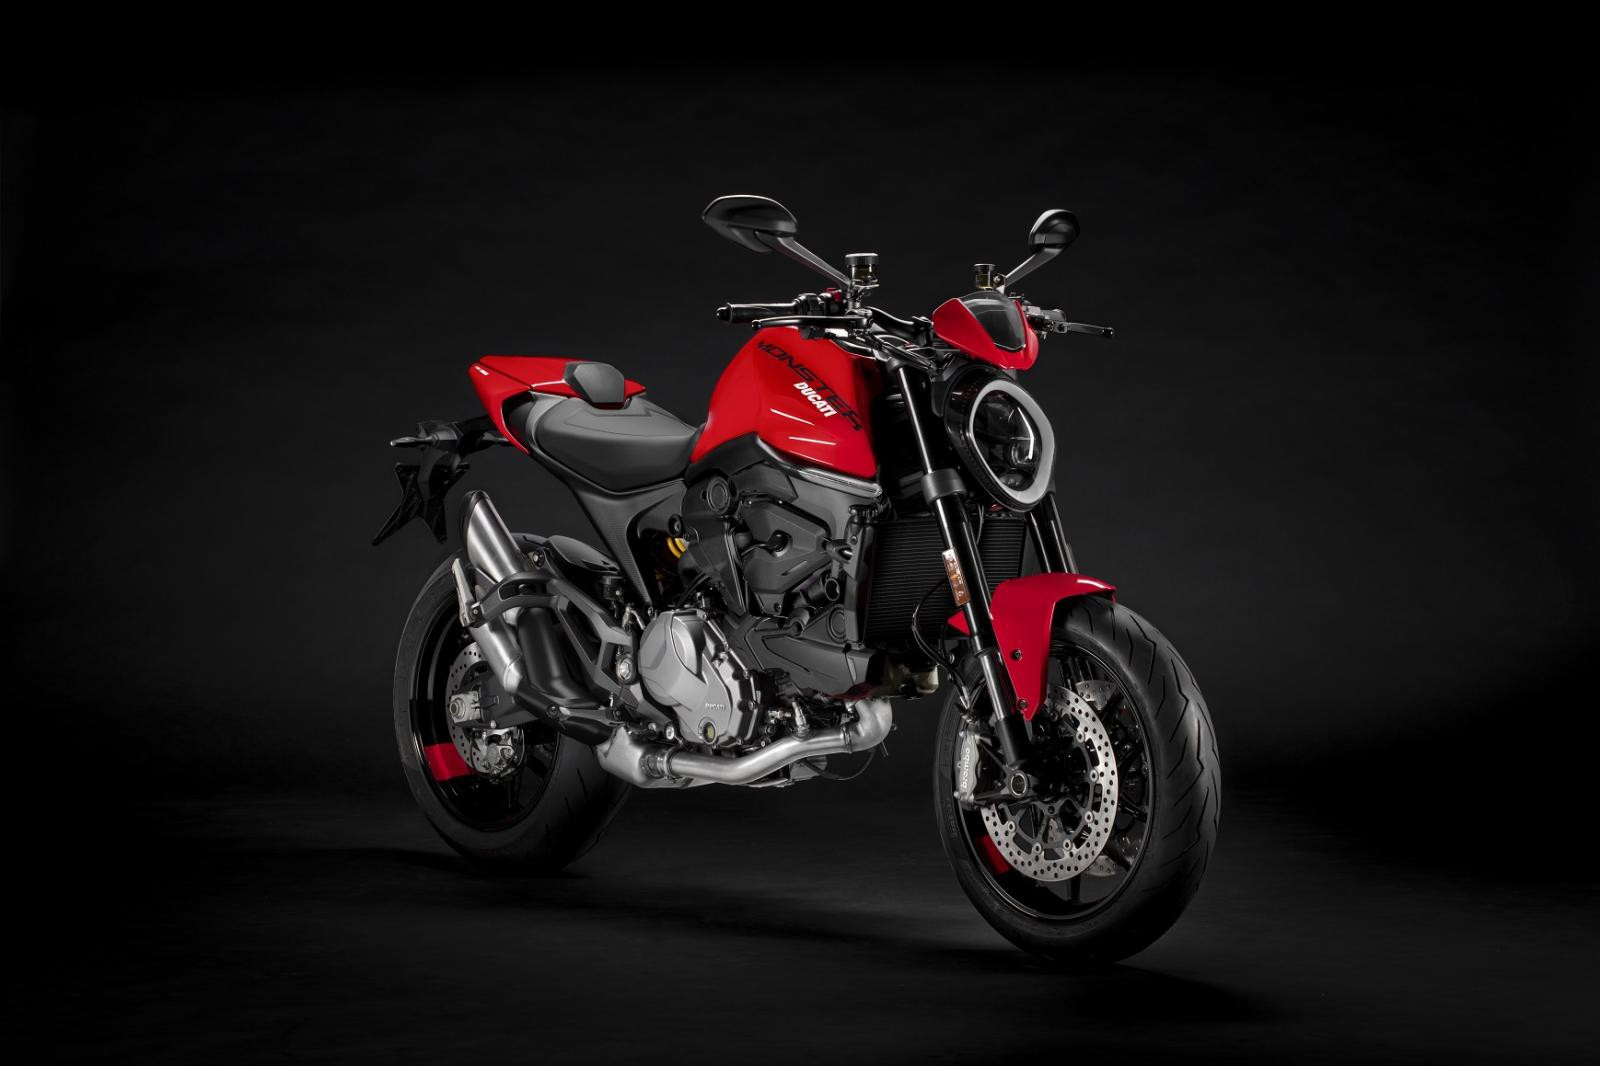 2021 ducati monster red front right bc25